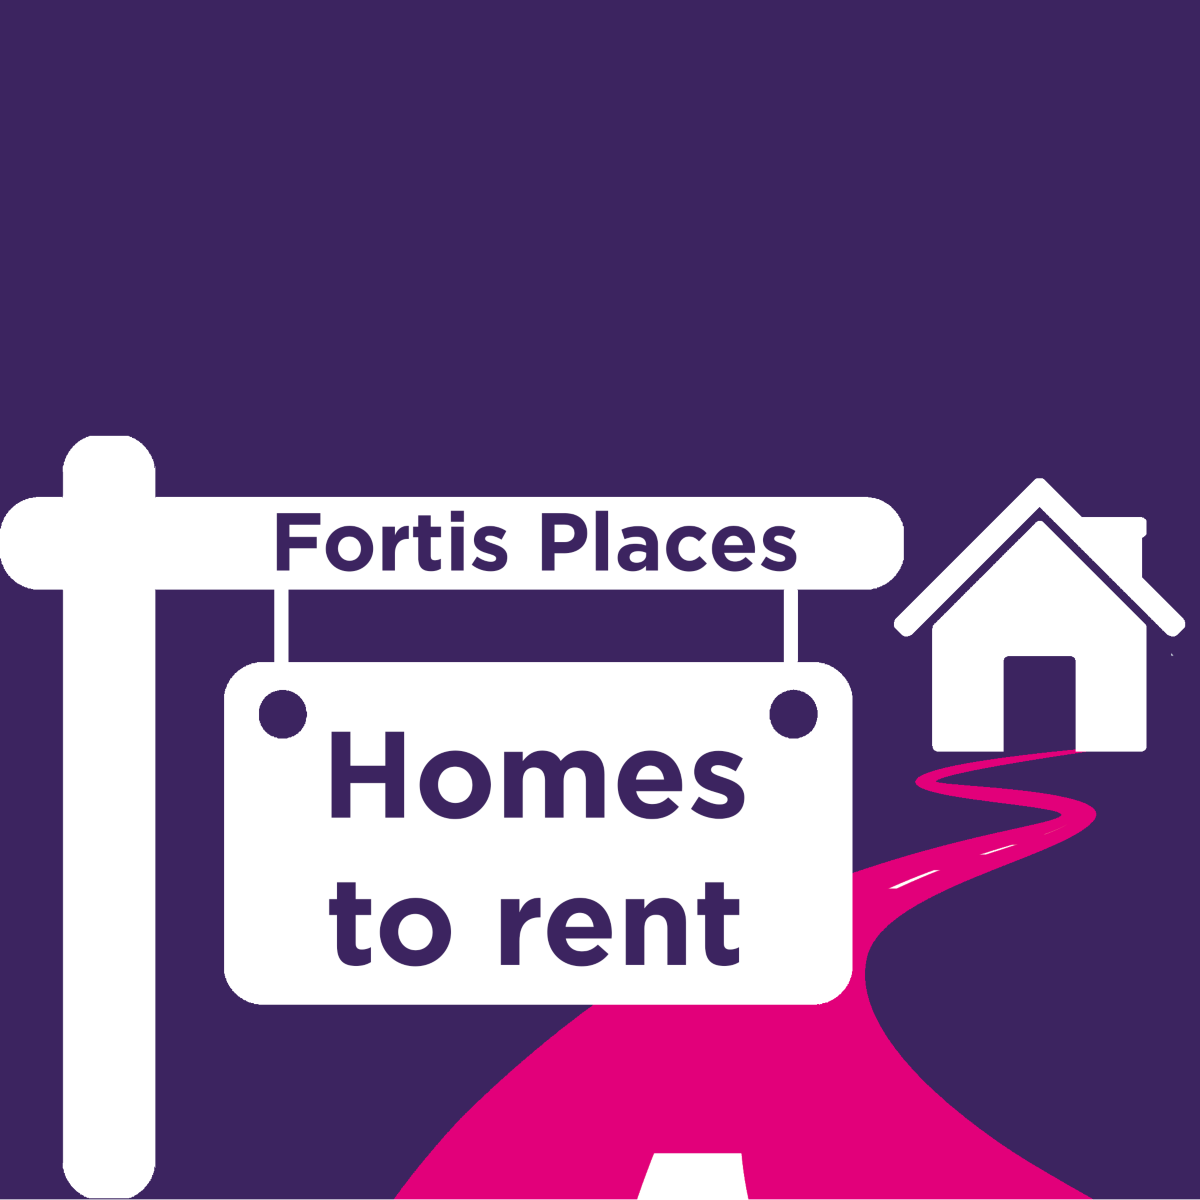 Fortis Places